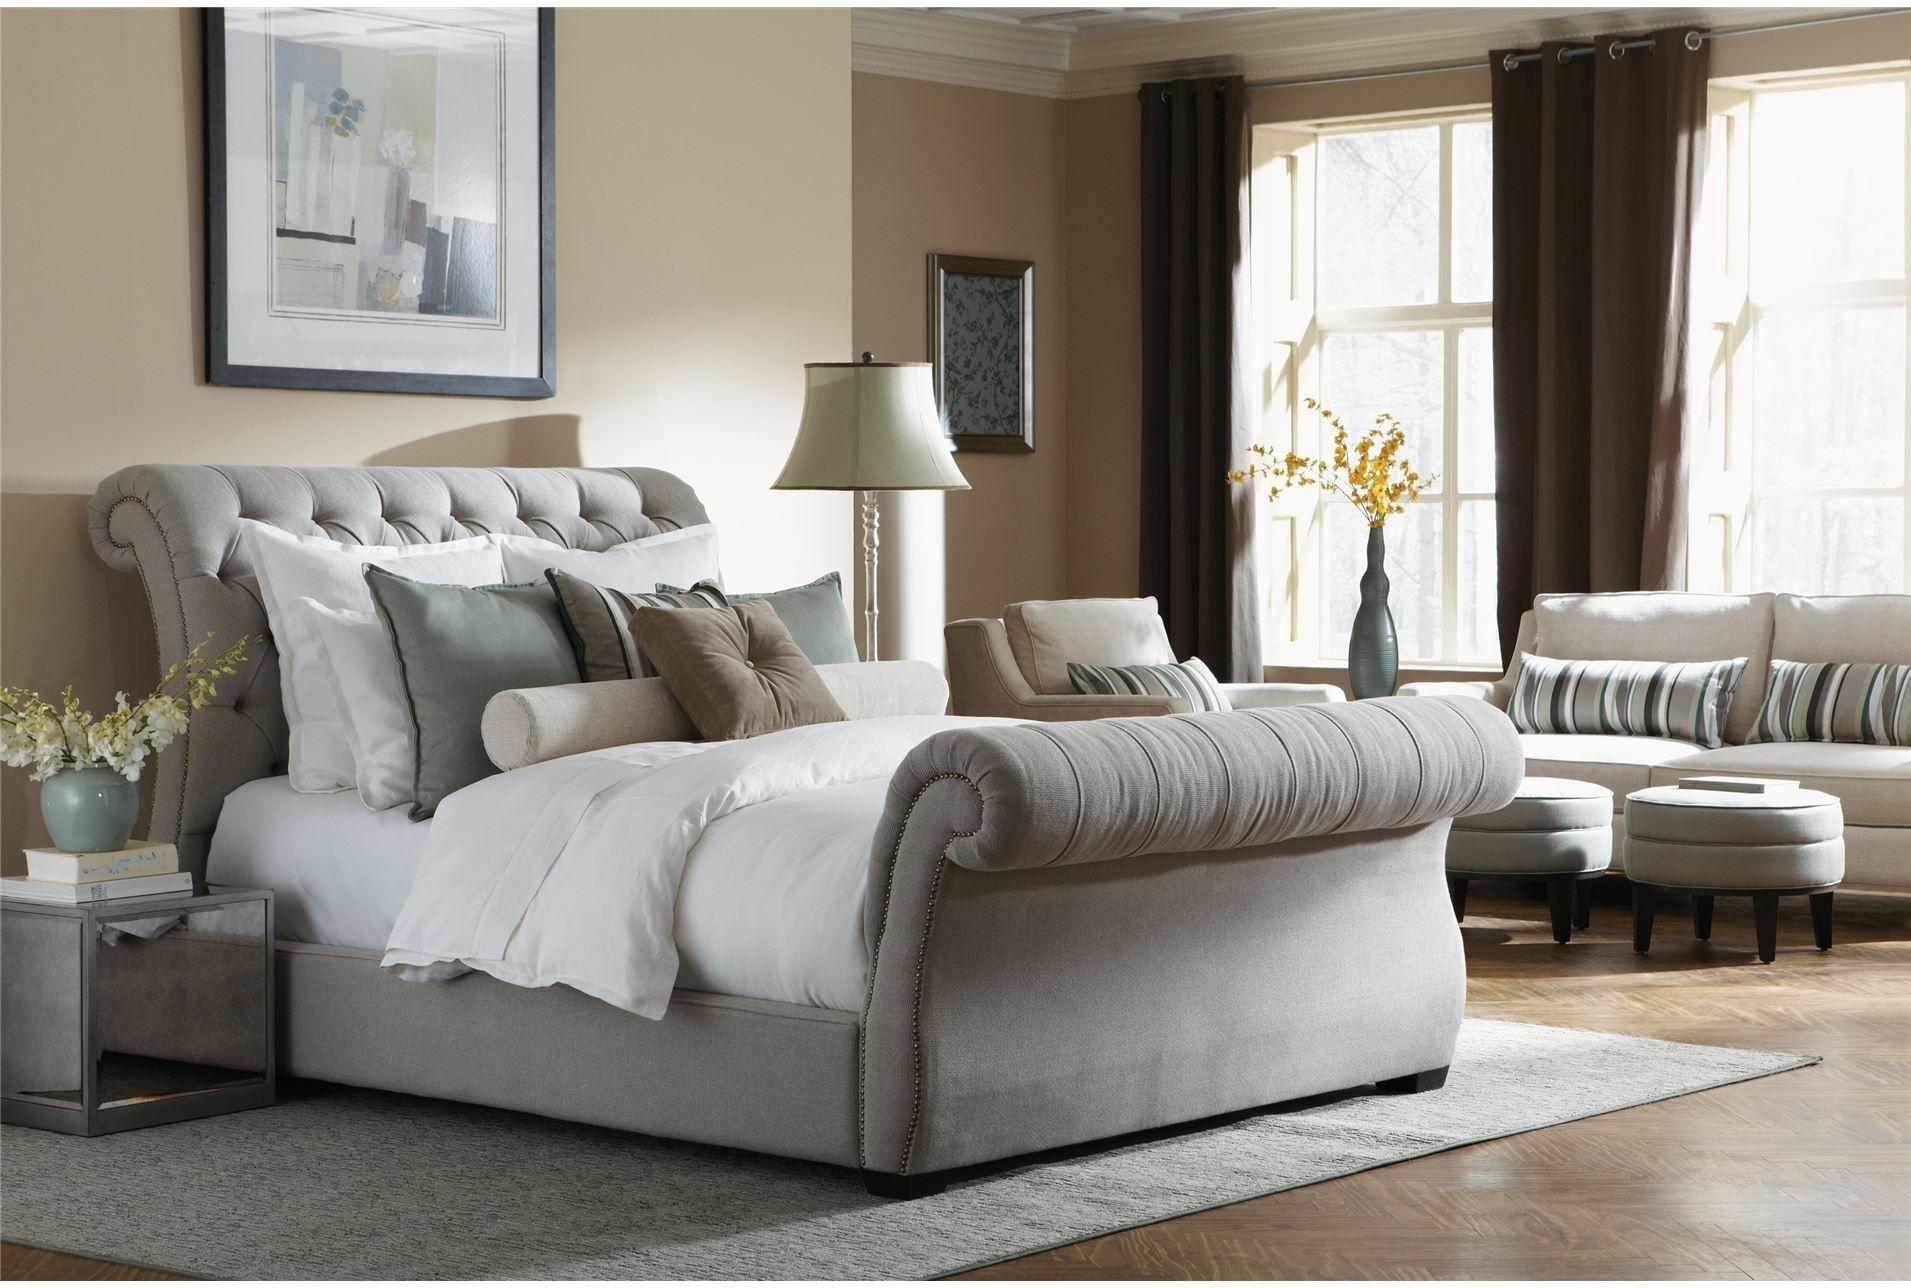 Tufted Sleigh Bed Fabric Upholstery